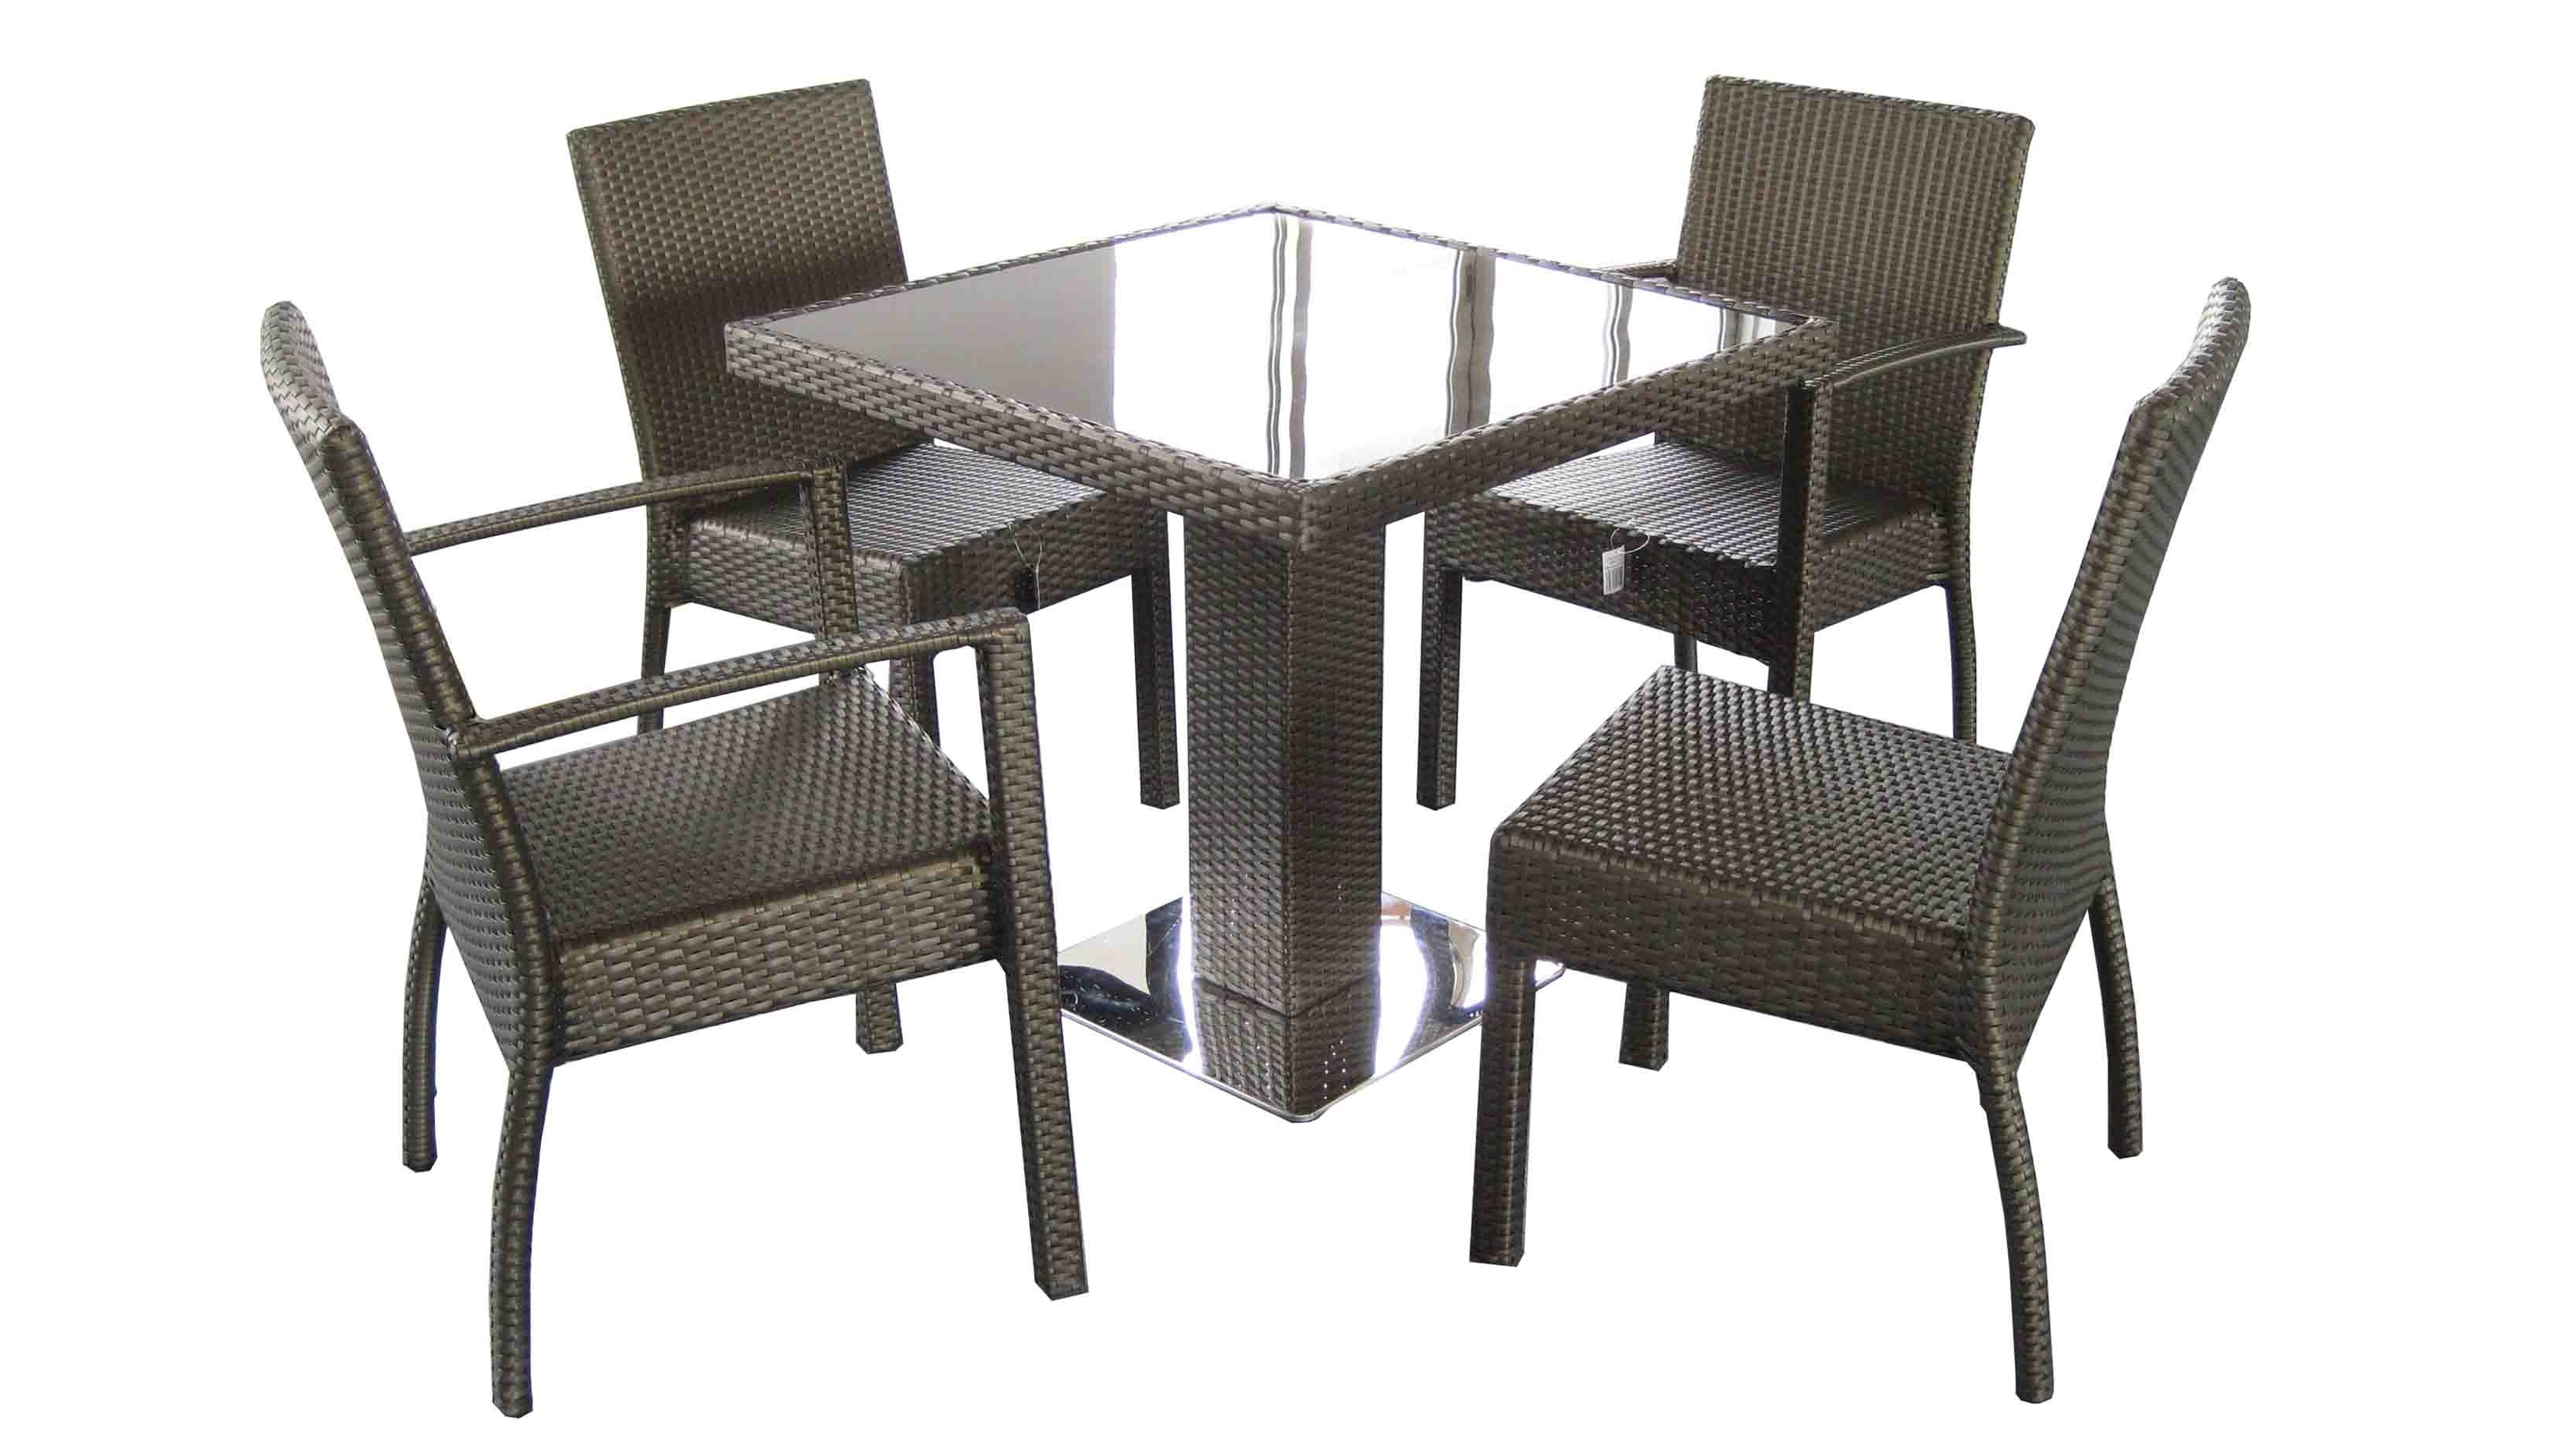 Rattan Dining Table Set,outdoor Furniture,outdoor Wicker, Cheap Within Well Known Rattan Dining Tables (View 9 of 25)